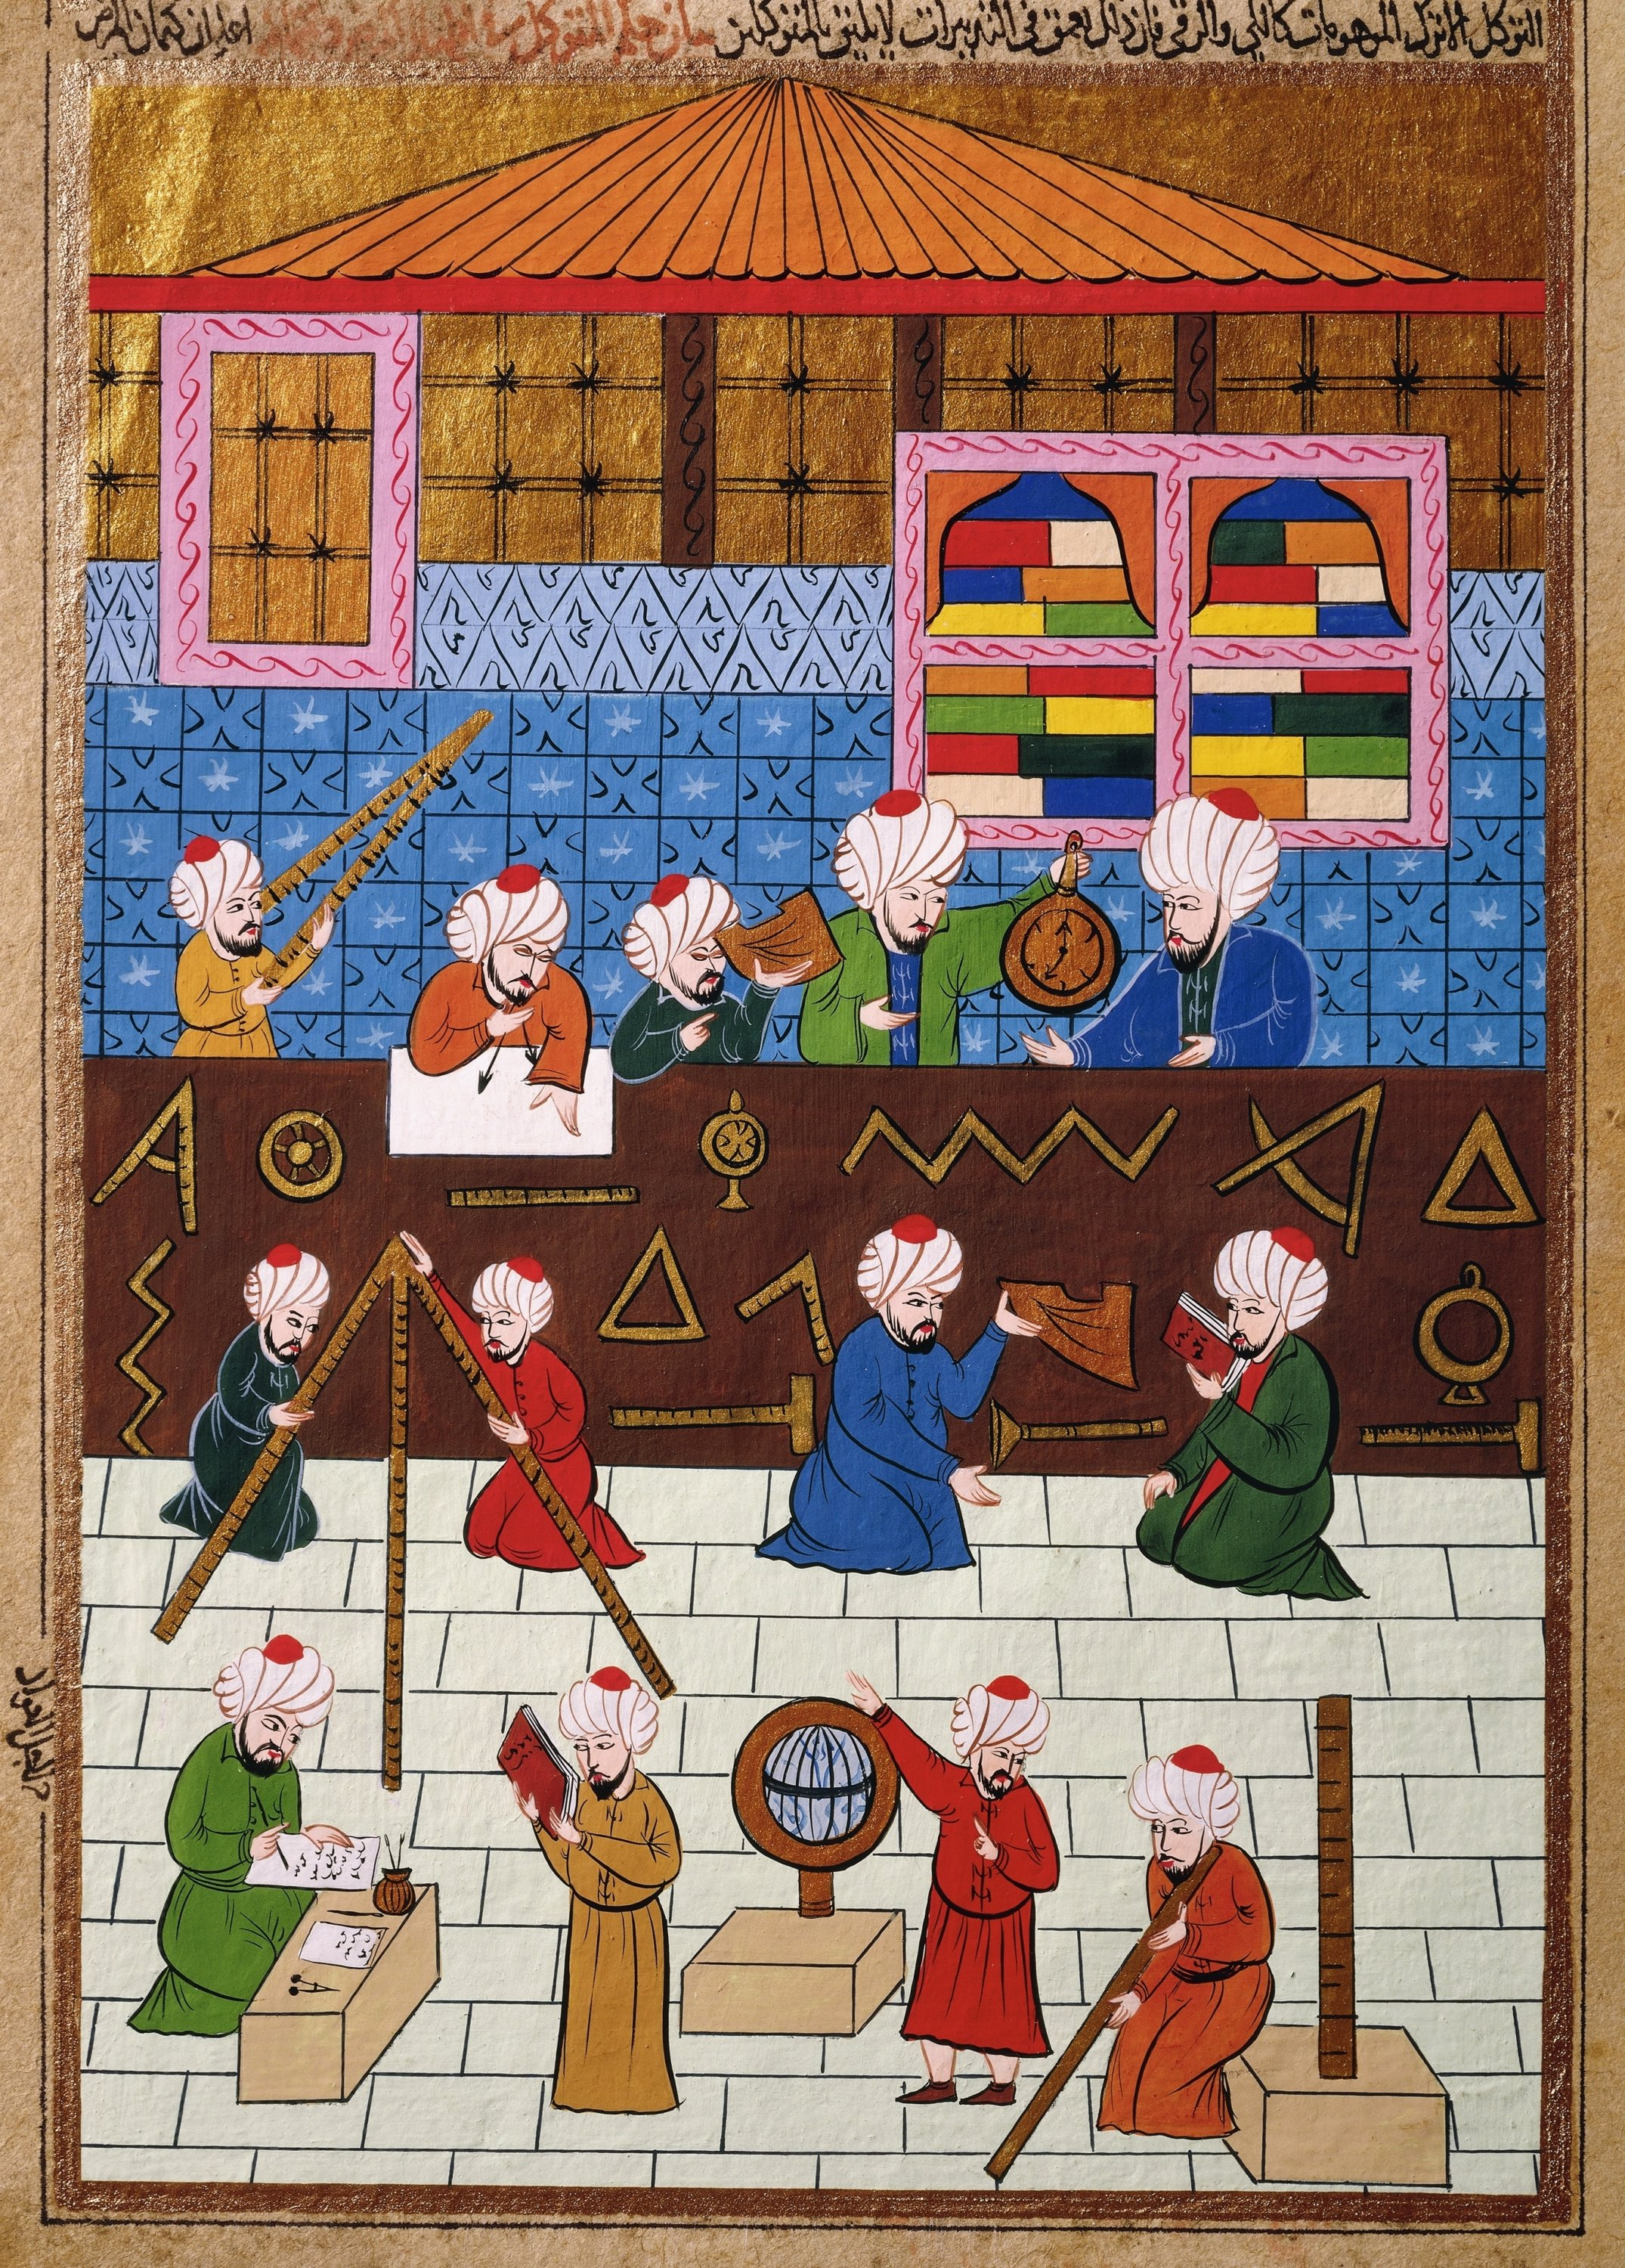 Scholars and astronomers read during their researches in the observatory of Galata tower in this 16-th century Ottoman miniature from Istanbul University Library (Photo by Getty Images)